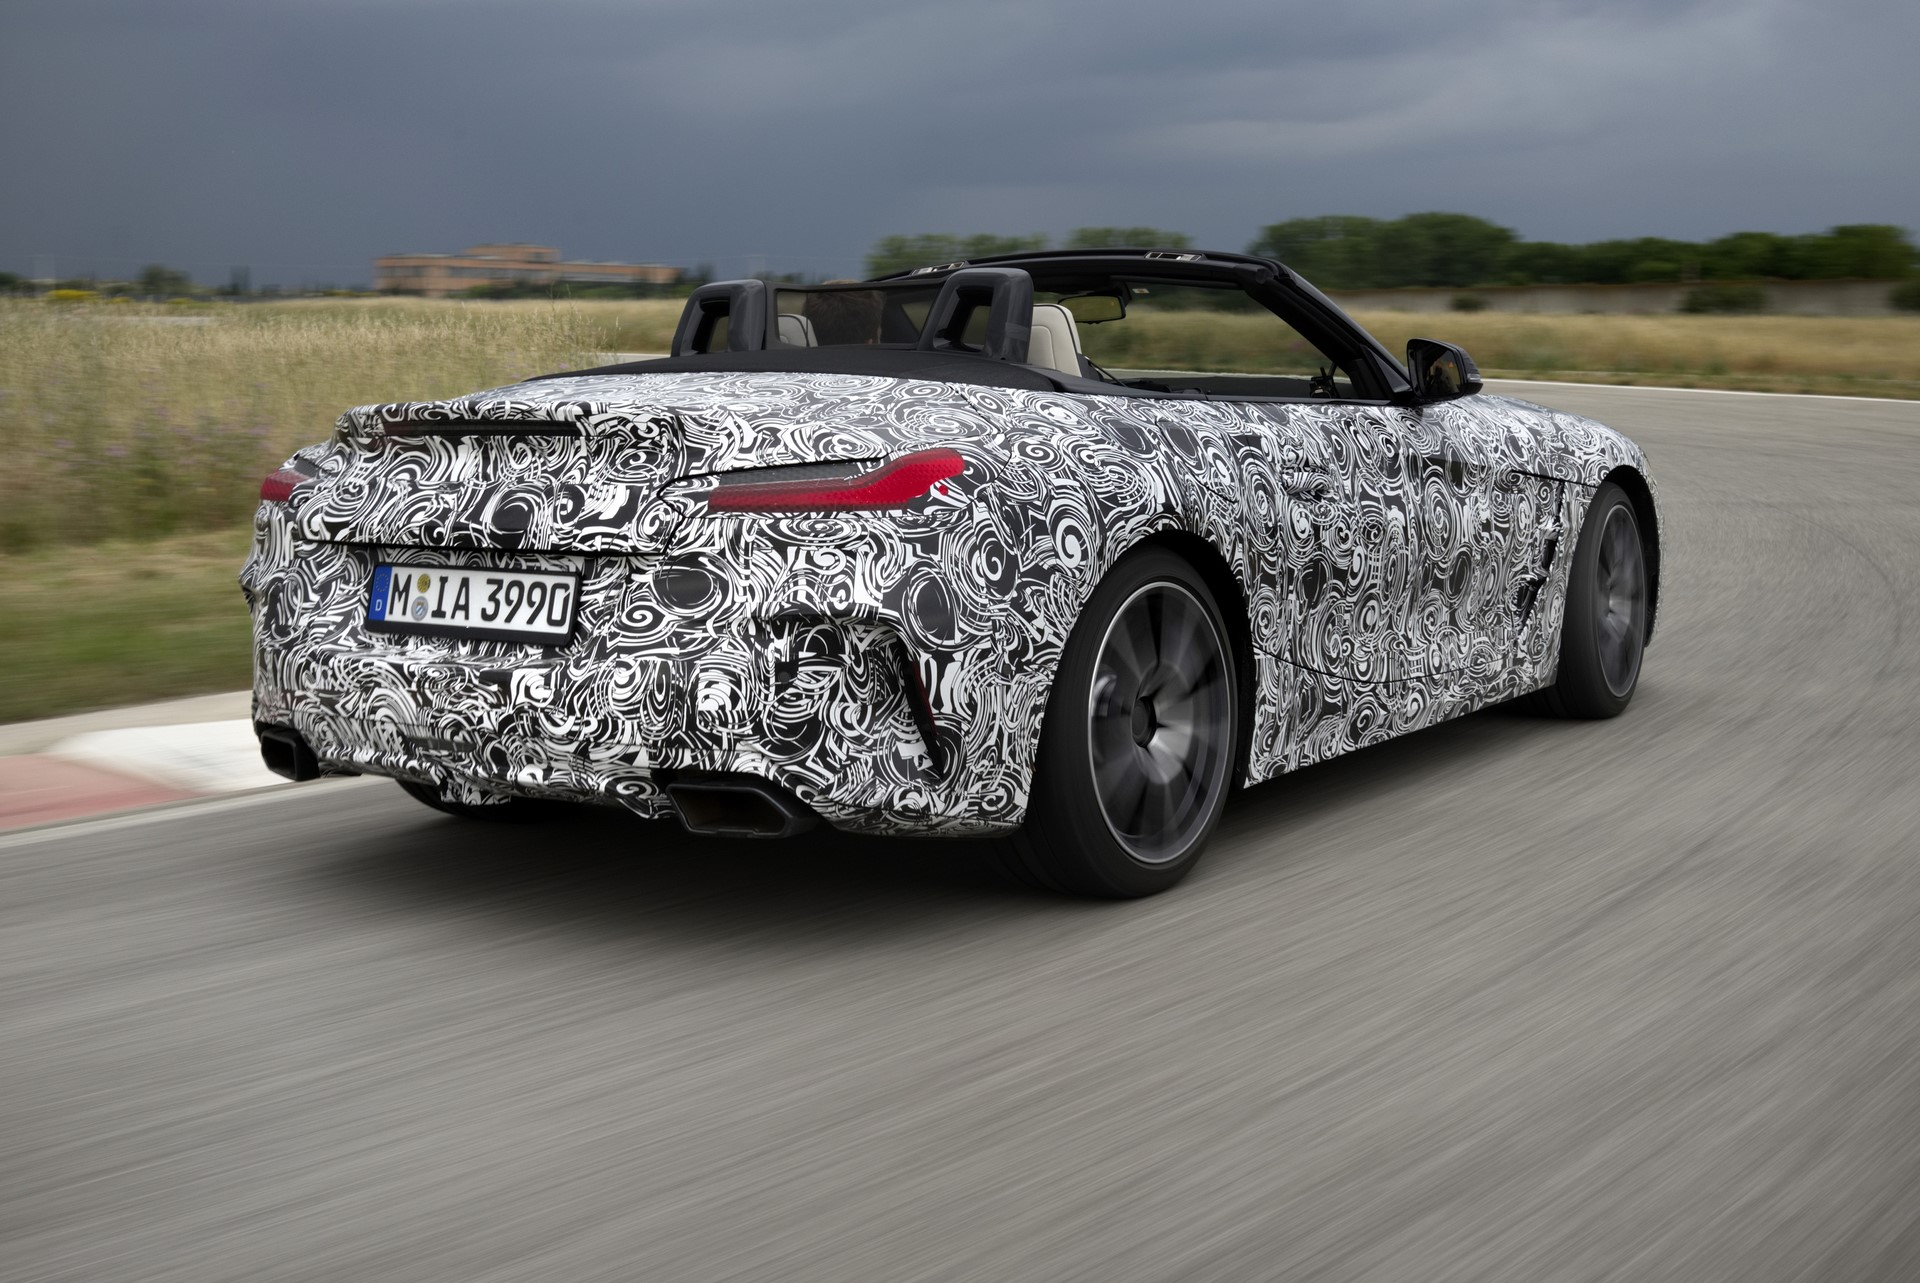 BMW Z4 M40i 2019 official spy photos (14)